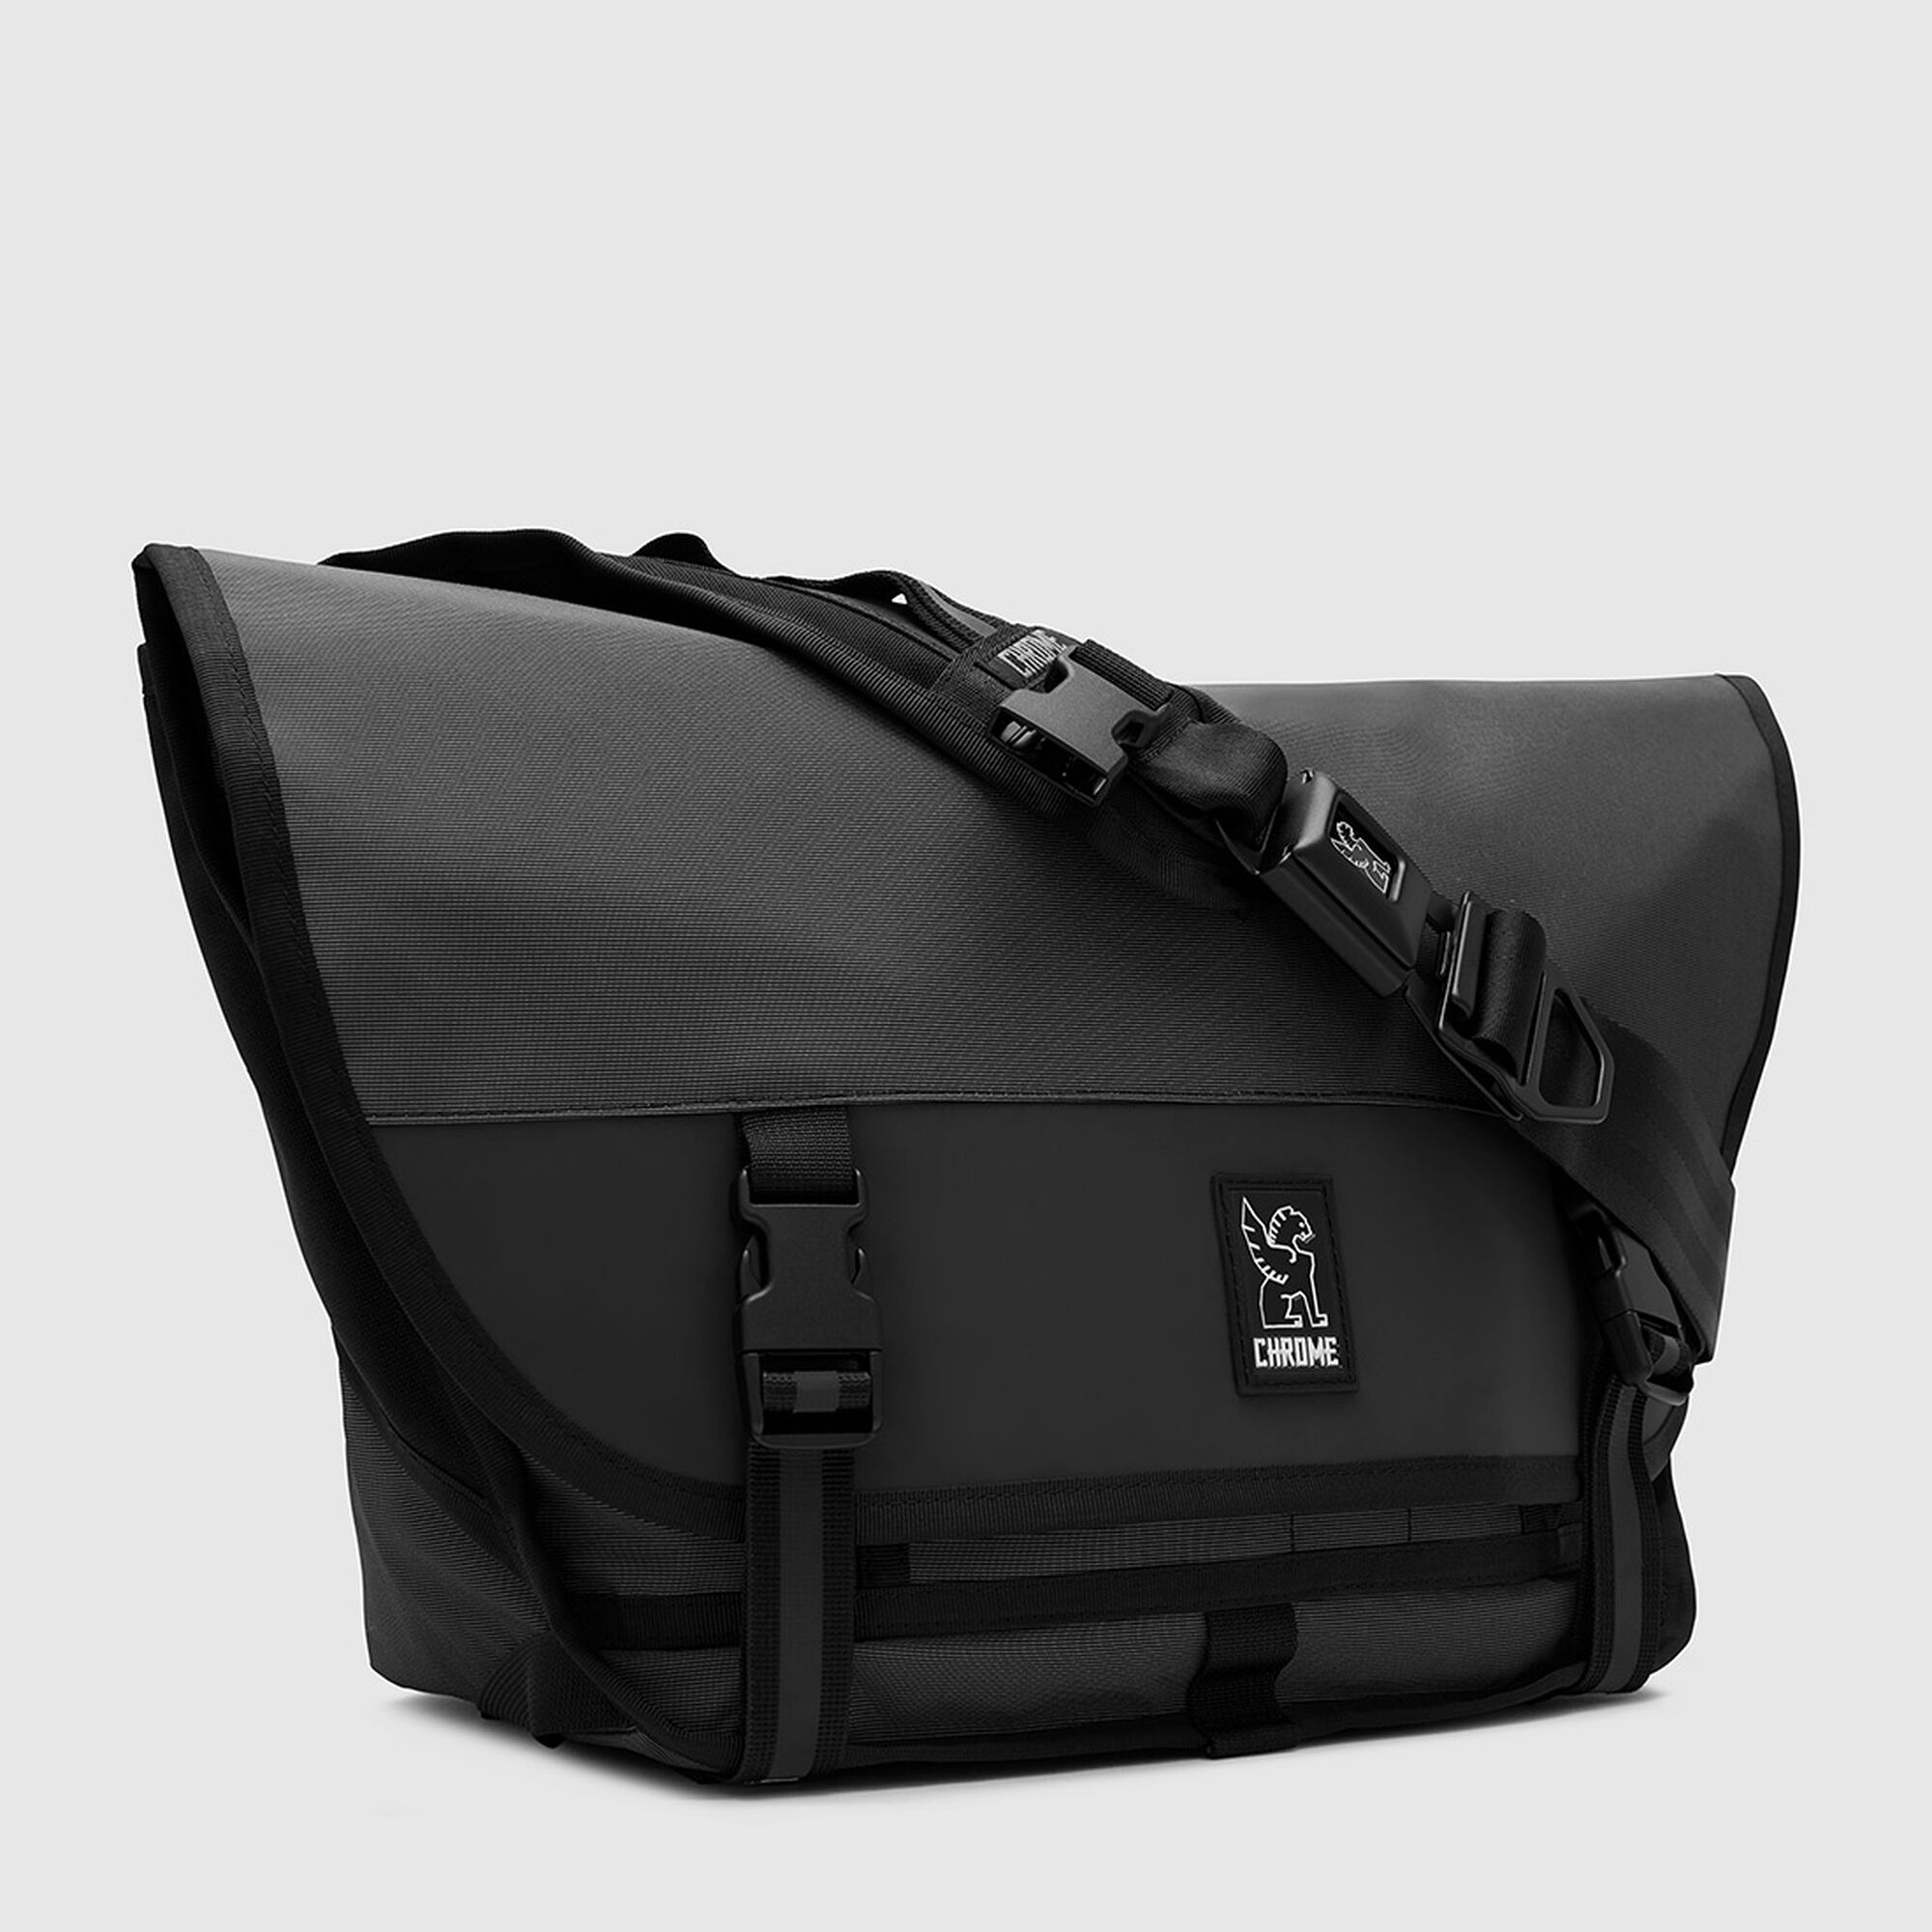 ... The Welterweight Mini Metro Messenger Bag in Charcoal   Black - small  view. 35fcf325e9